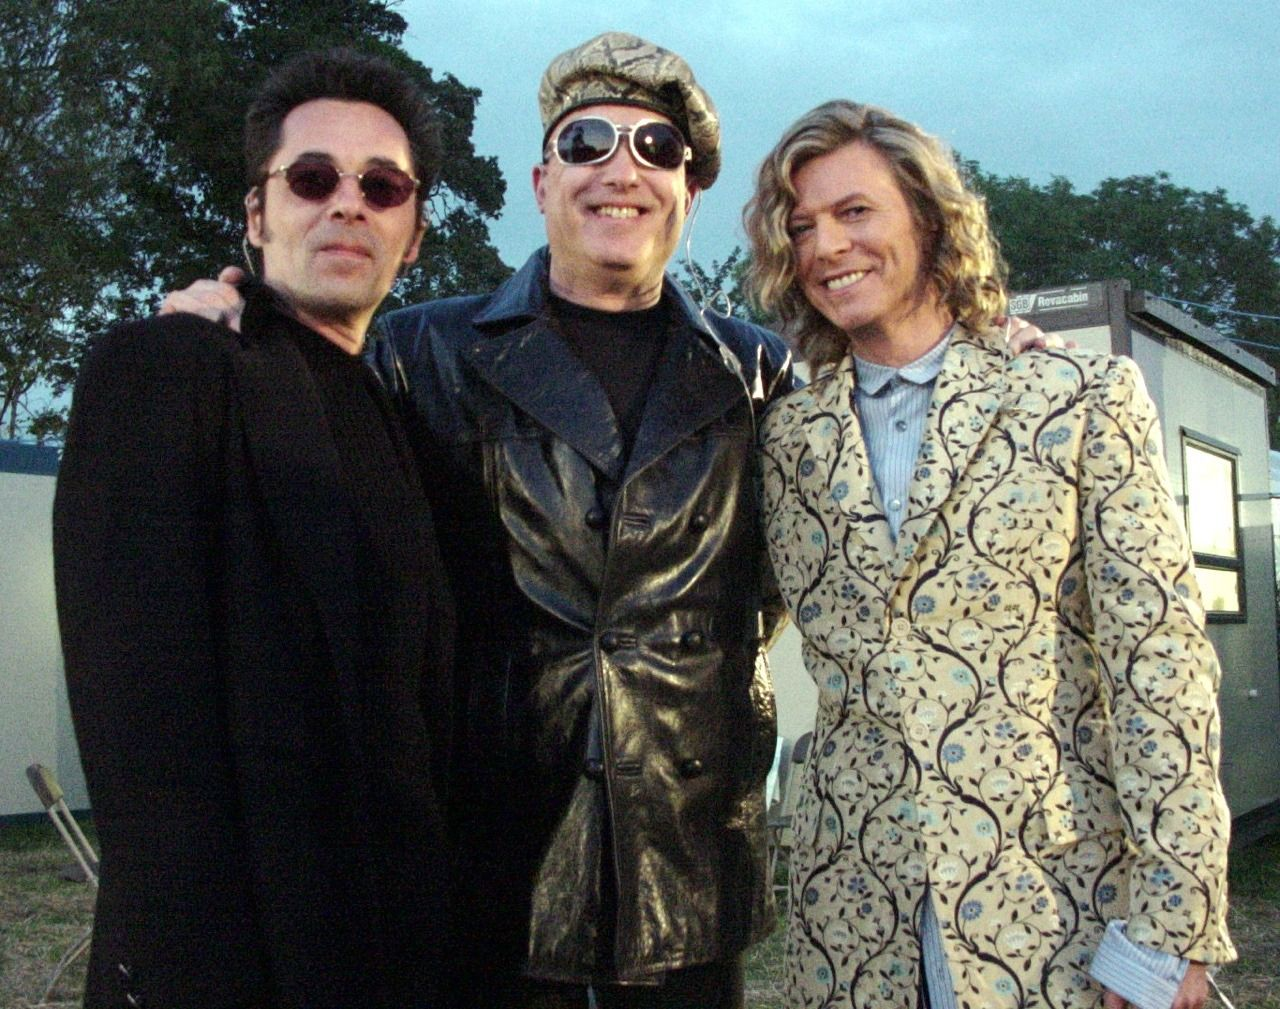 Bowie, Earl Slick, Mike Garson - June 25th 2000, backstage at ...